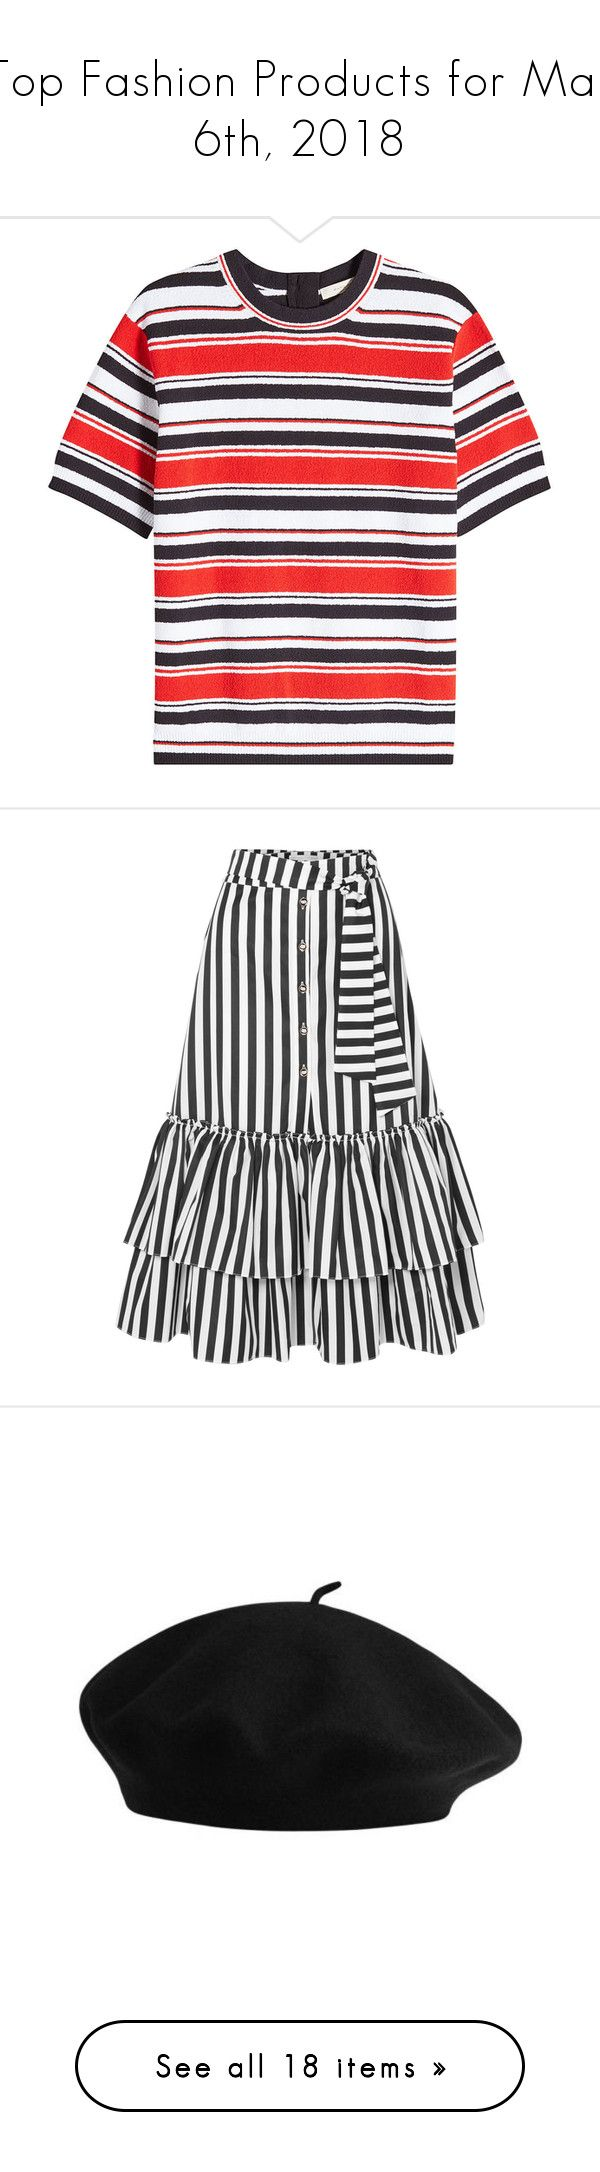 """Top Fashion Products for Mar 6th, 2018"" by polyvore ❤ liked on Polyvore featuring stripes, marc jacobs, skirts, black, caroline constas skirt, frilled skirt, striped skirts, midi flounce skirt, flounce skirt and accessories"